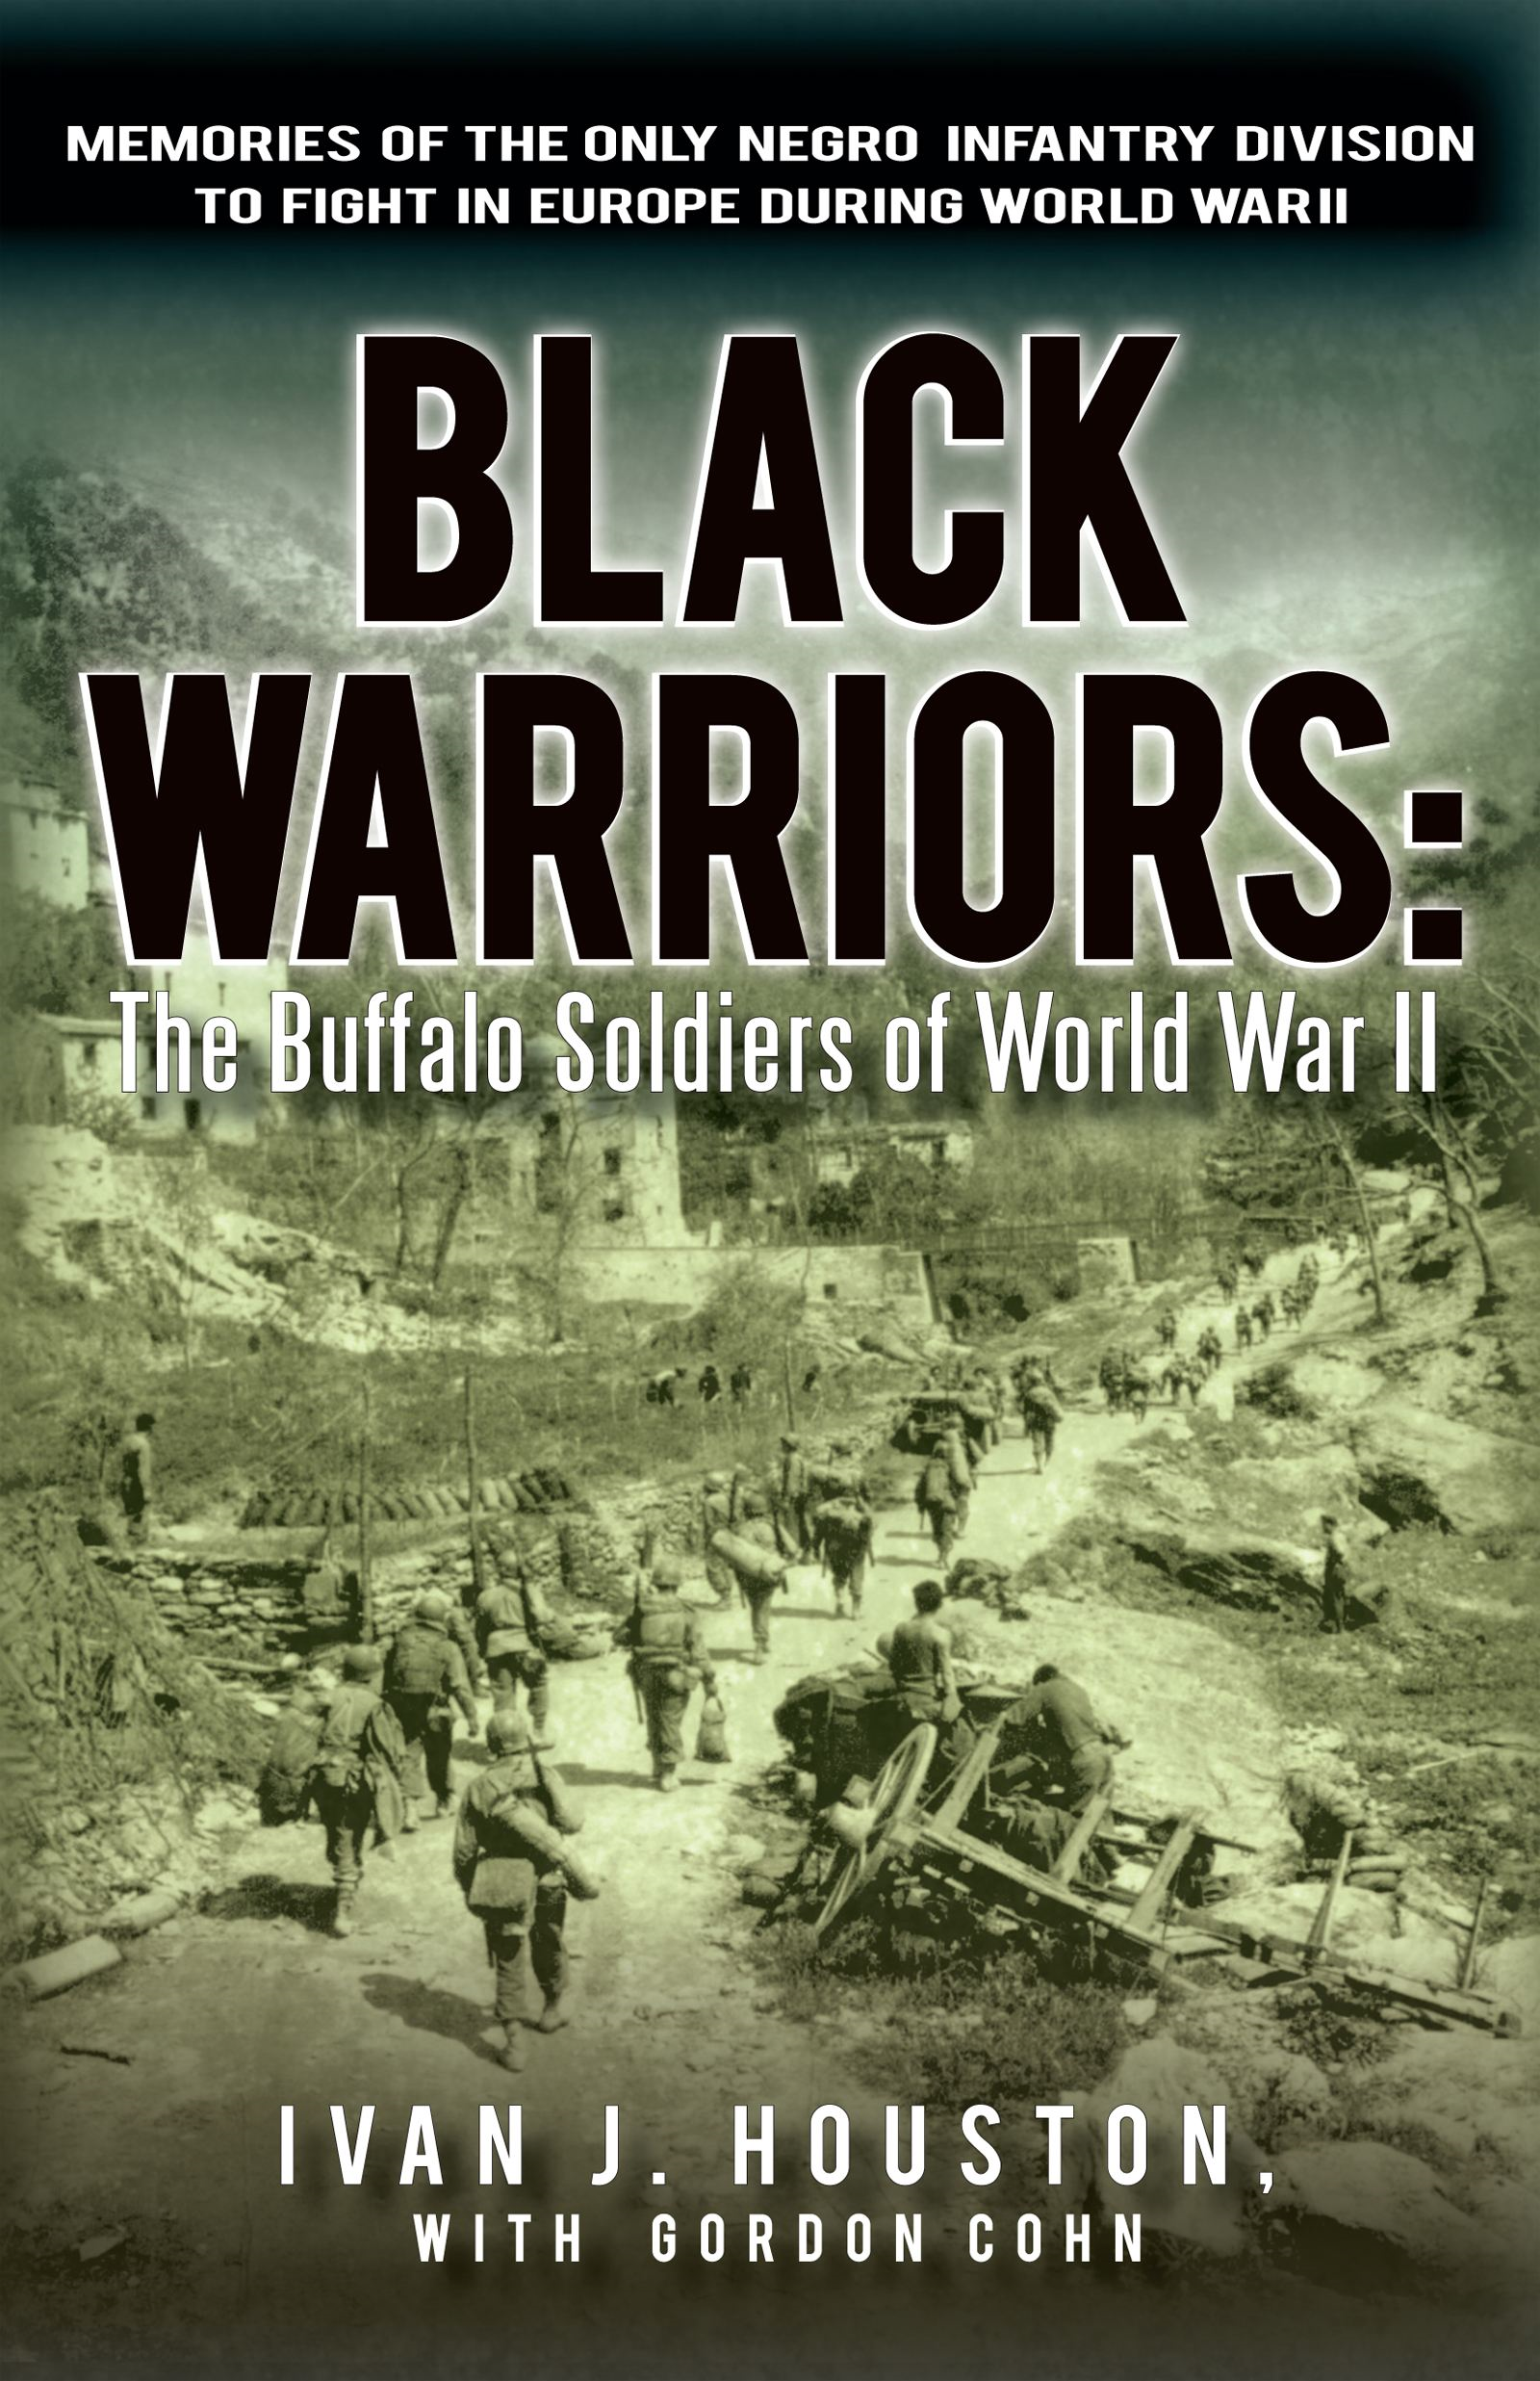 Black Warriors: The Buffalo Soldiers of World War II By: Ivan J. Houston, with Gordon Cohn